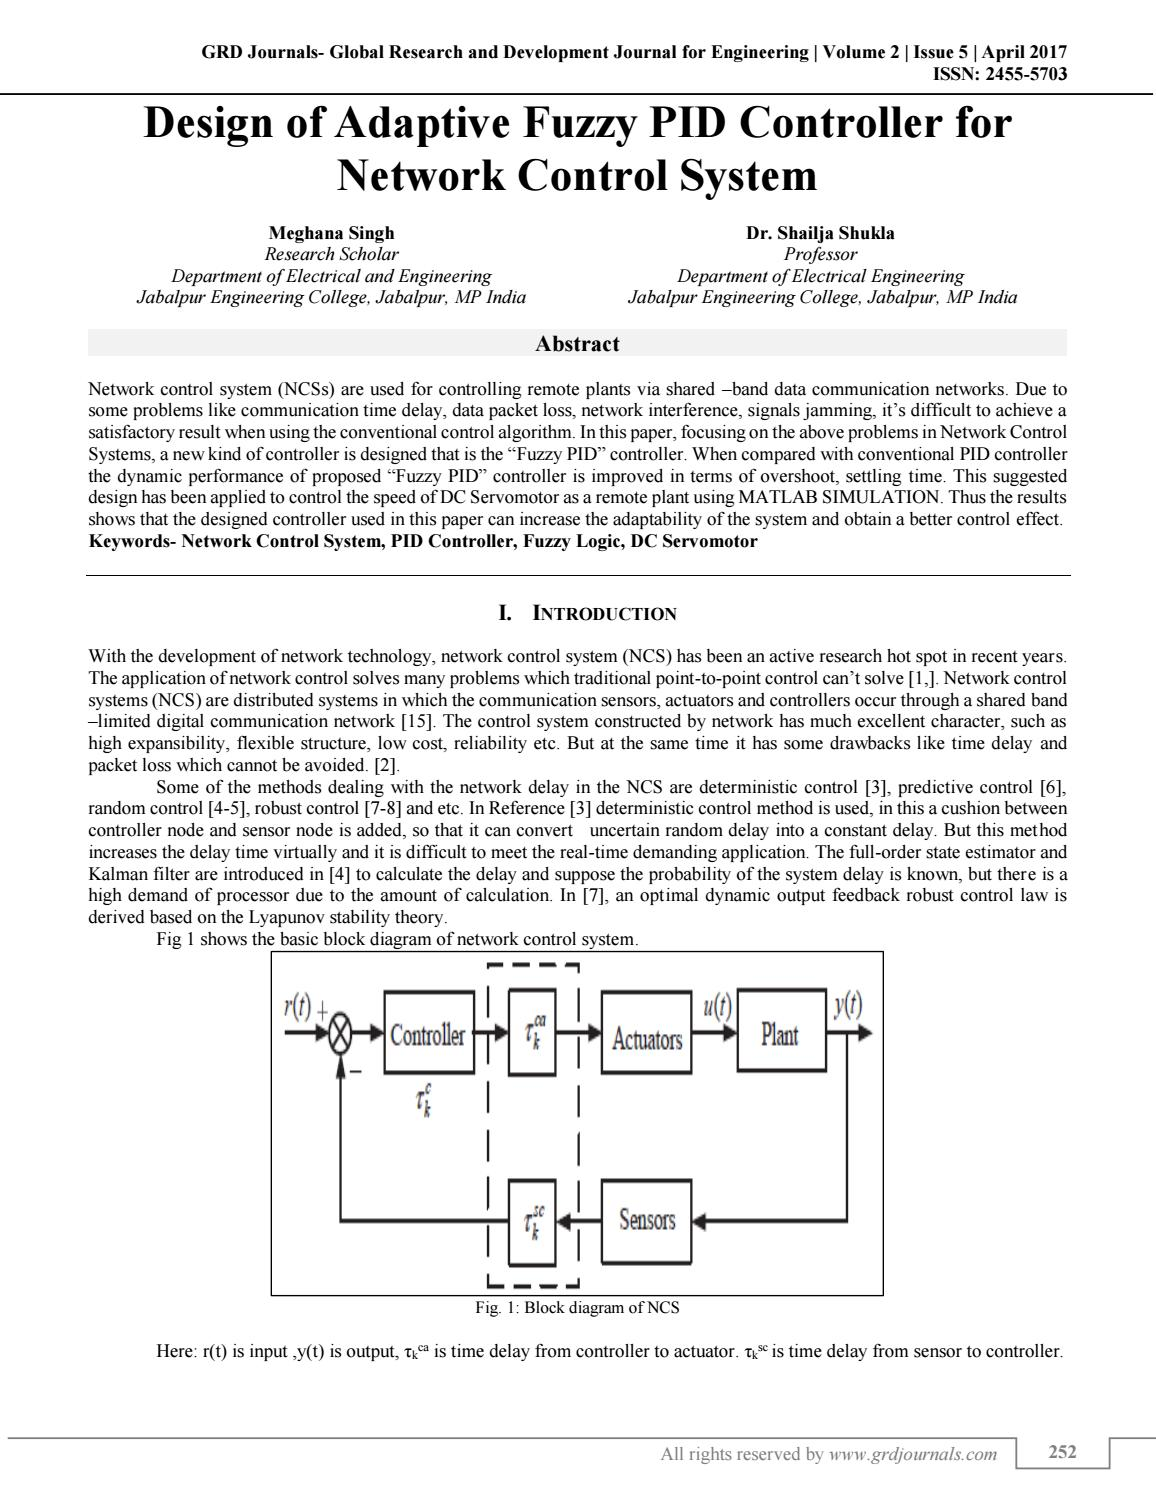 Design Of Adaptive Fuzzy Pid Controller For Network Control System P Id Block Diagram By Grd Journals Issuu